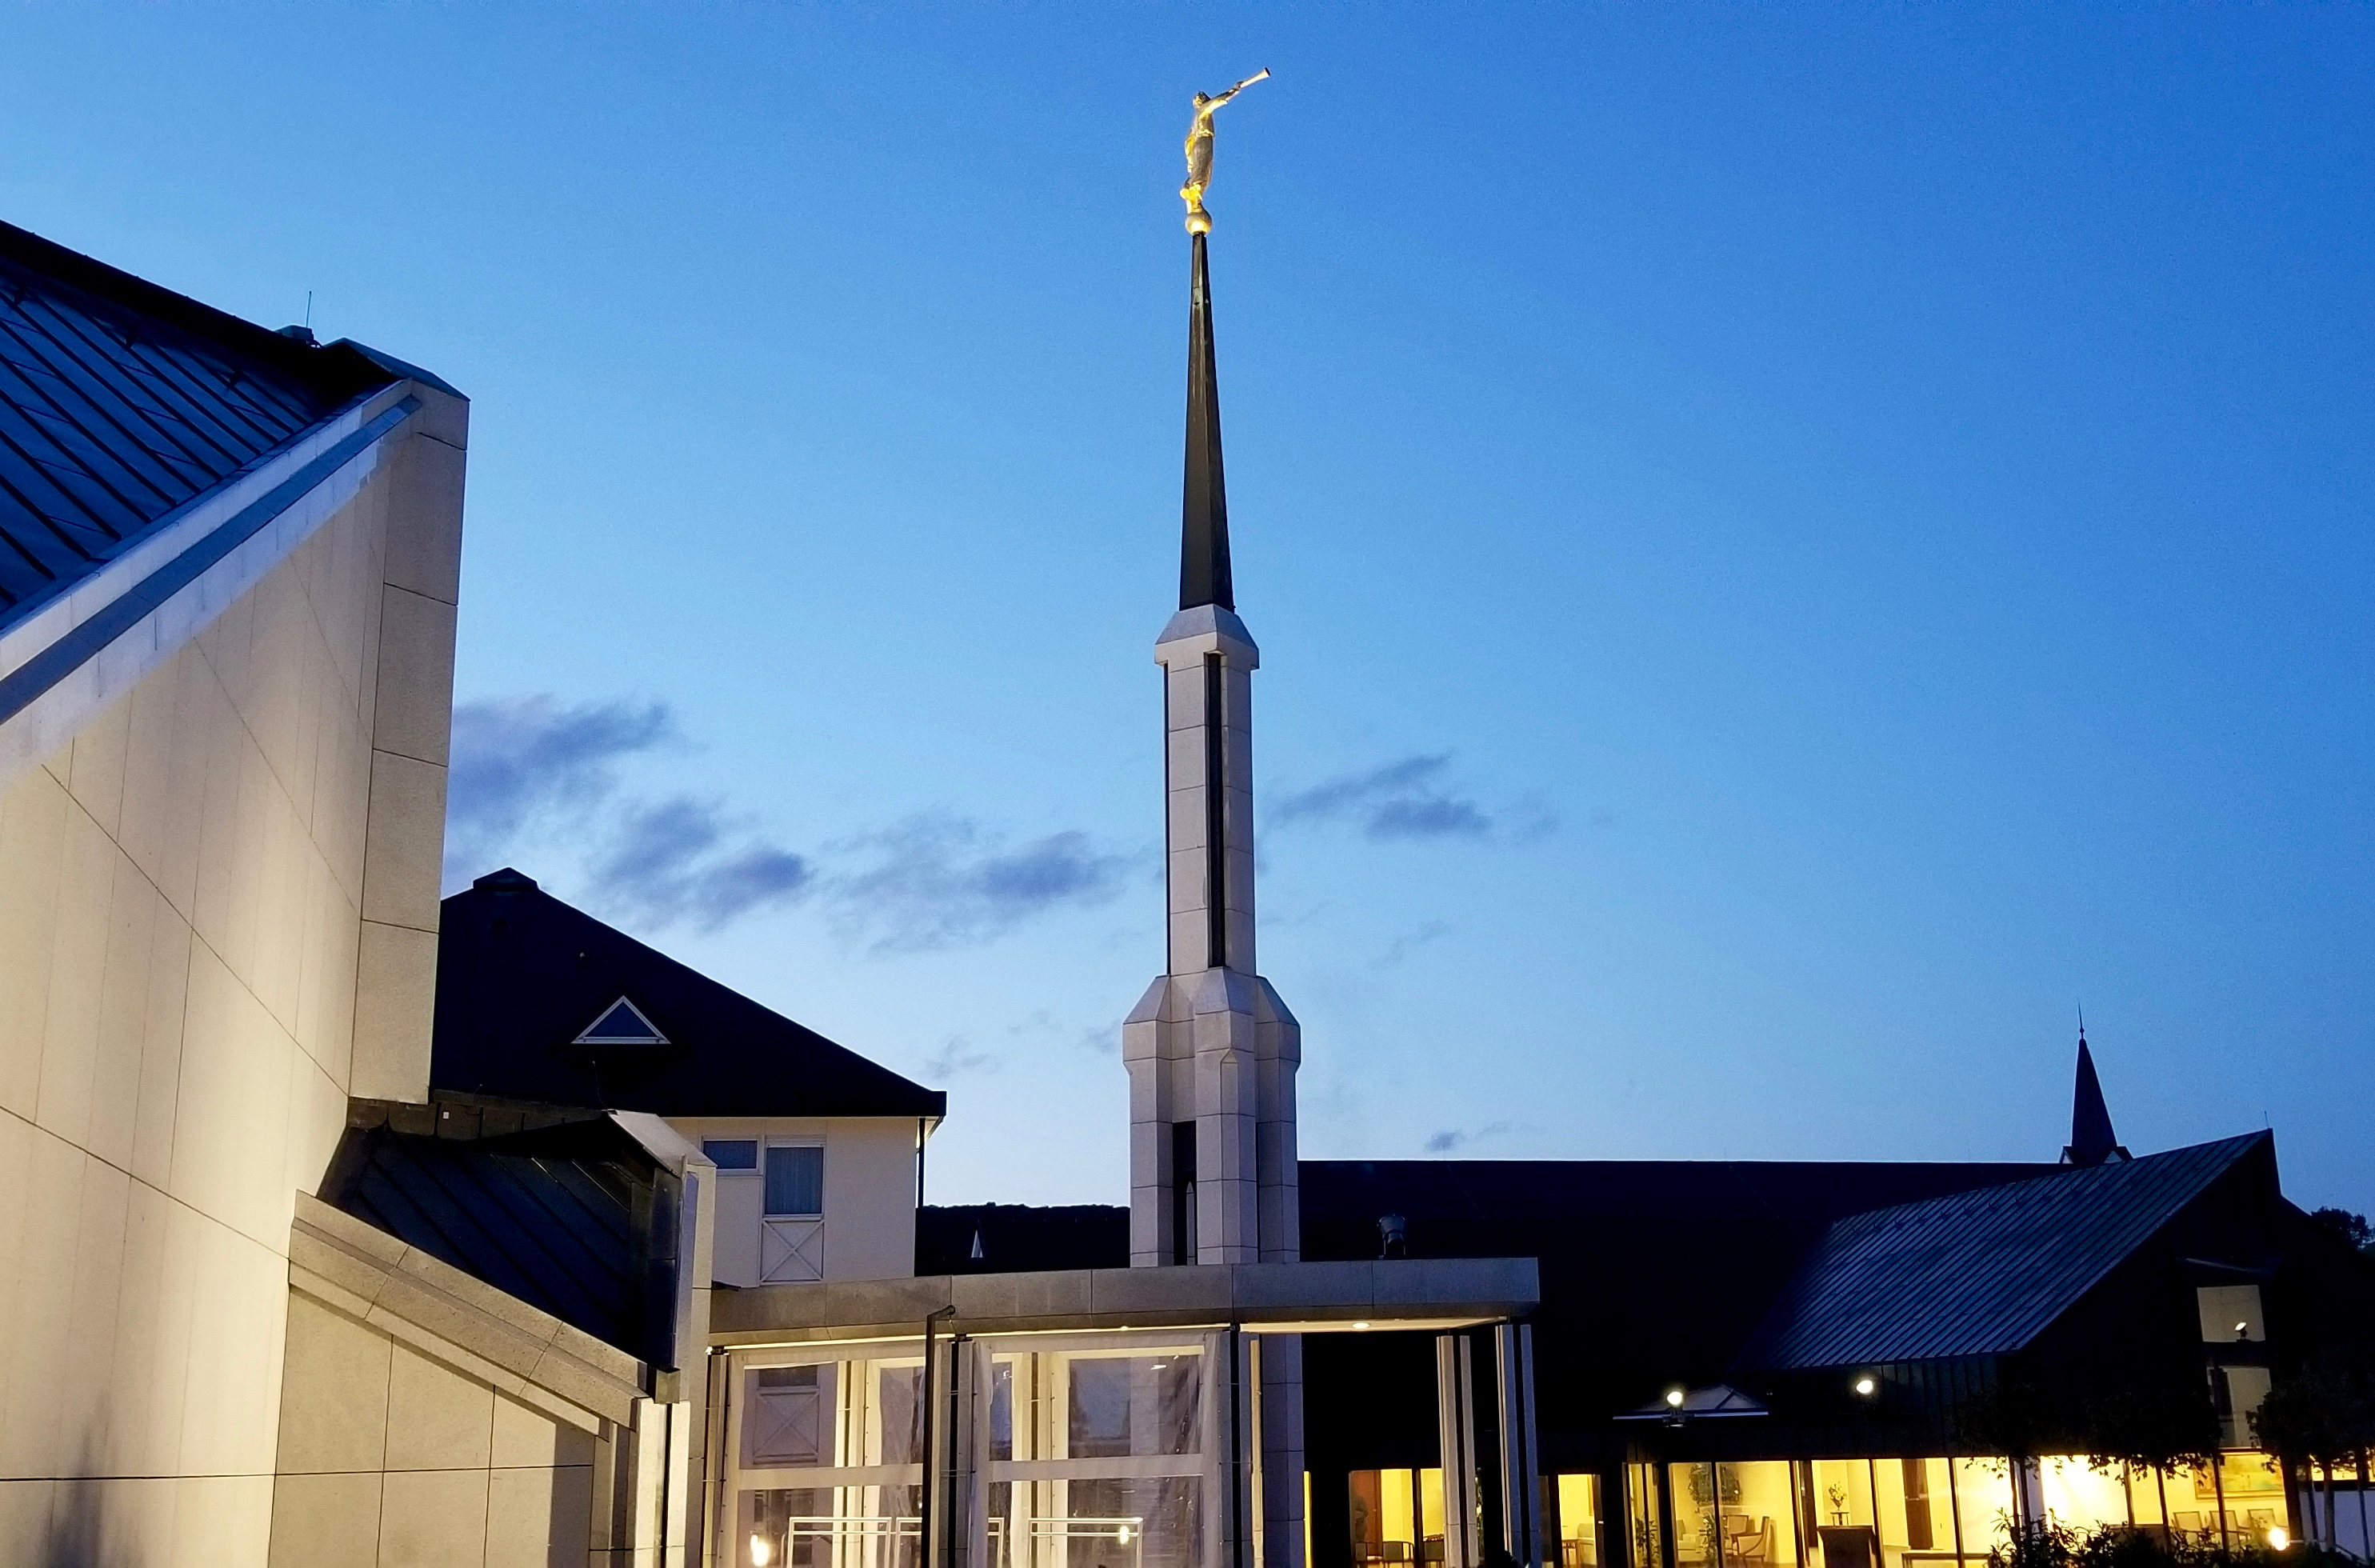 The Frankfurt Germany Temple at dusk on Oct. 18, 2019, with the temple annex and small visitors' area in the right background.